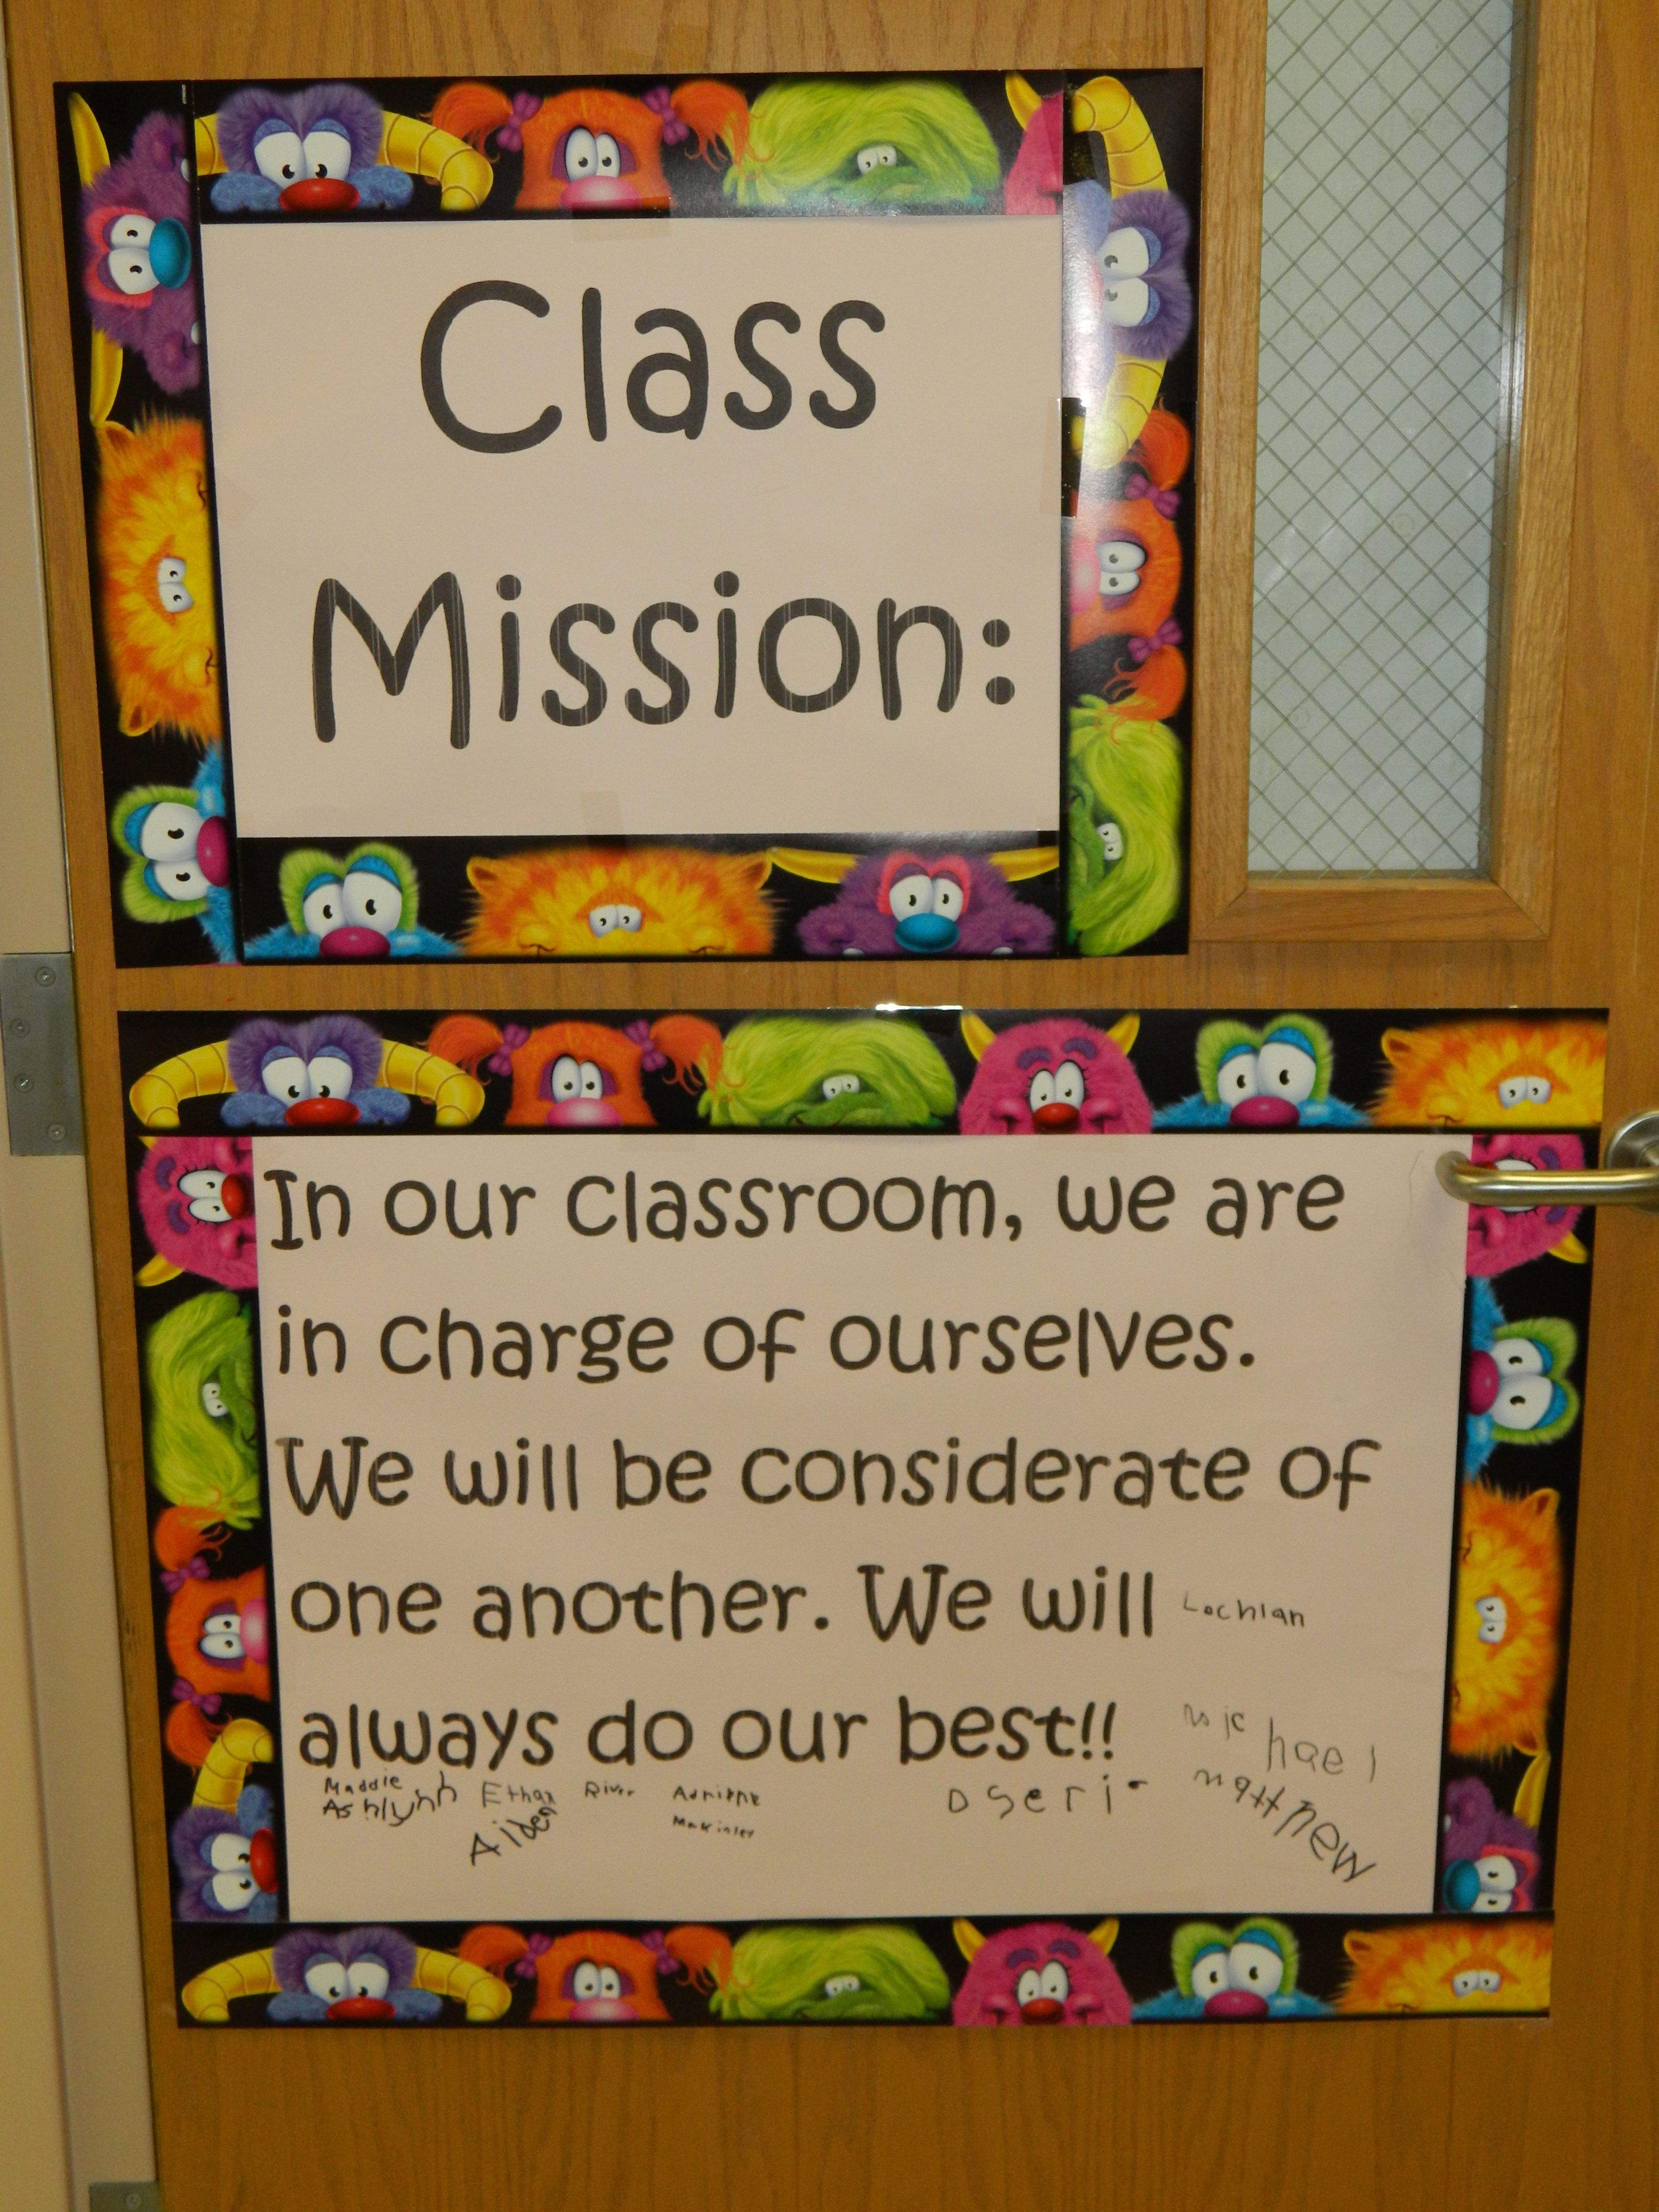 The 7 Habits Class Mission Statement In A Lower Grades Classroom